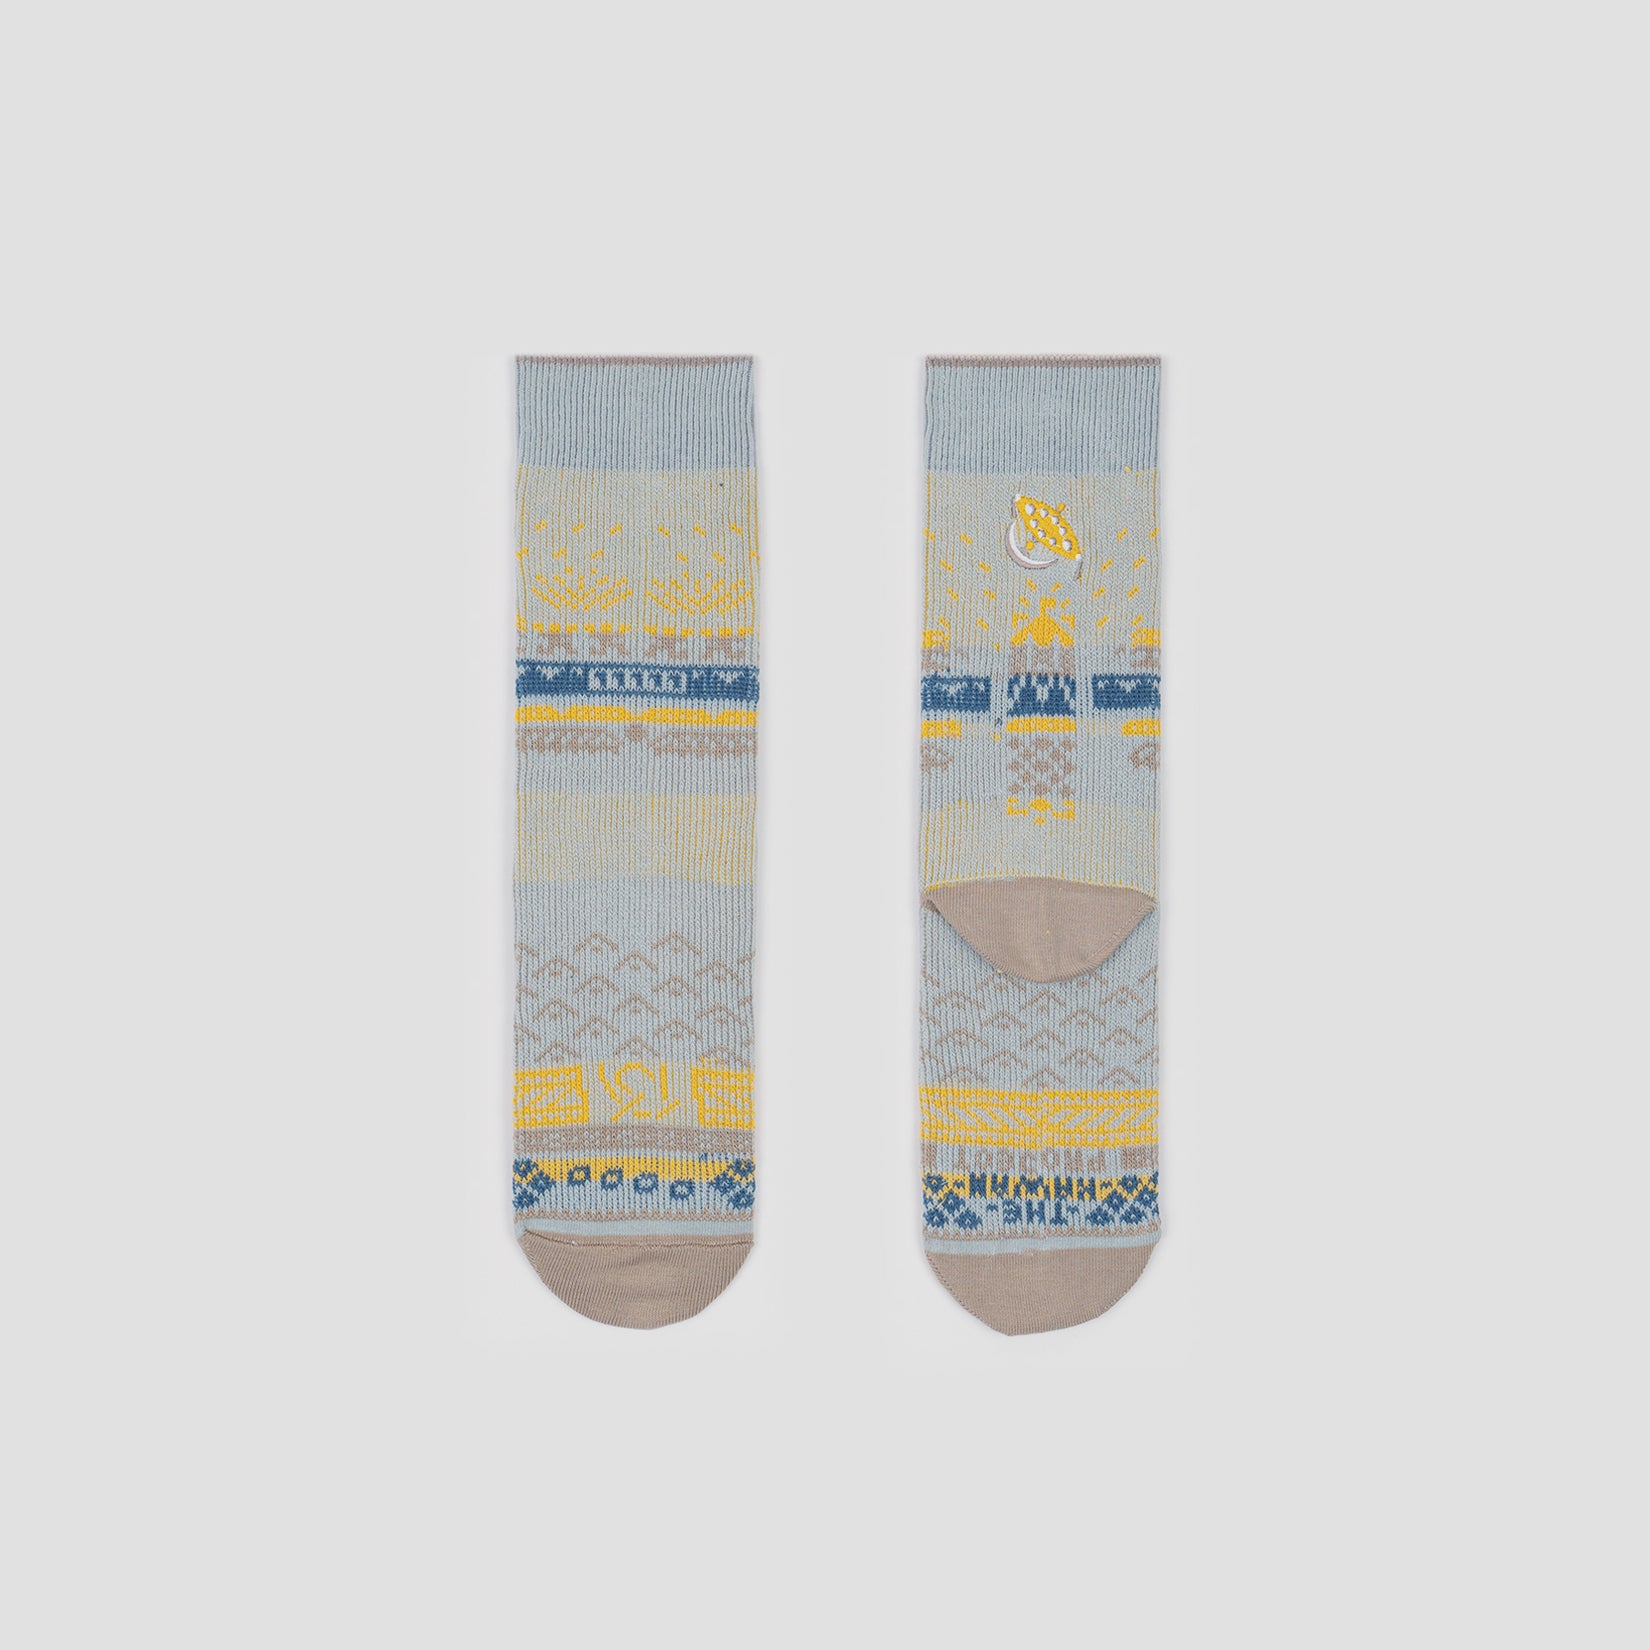 Greater 2gether - Light Grey Socks